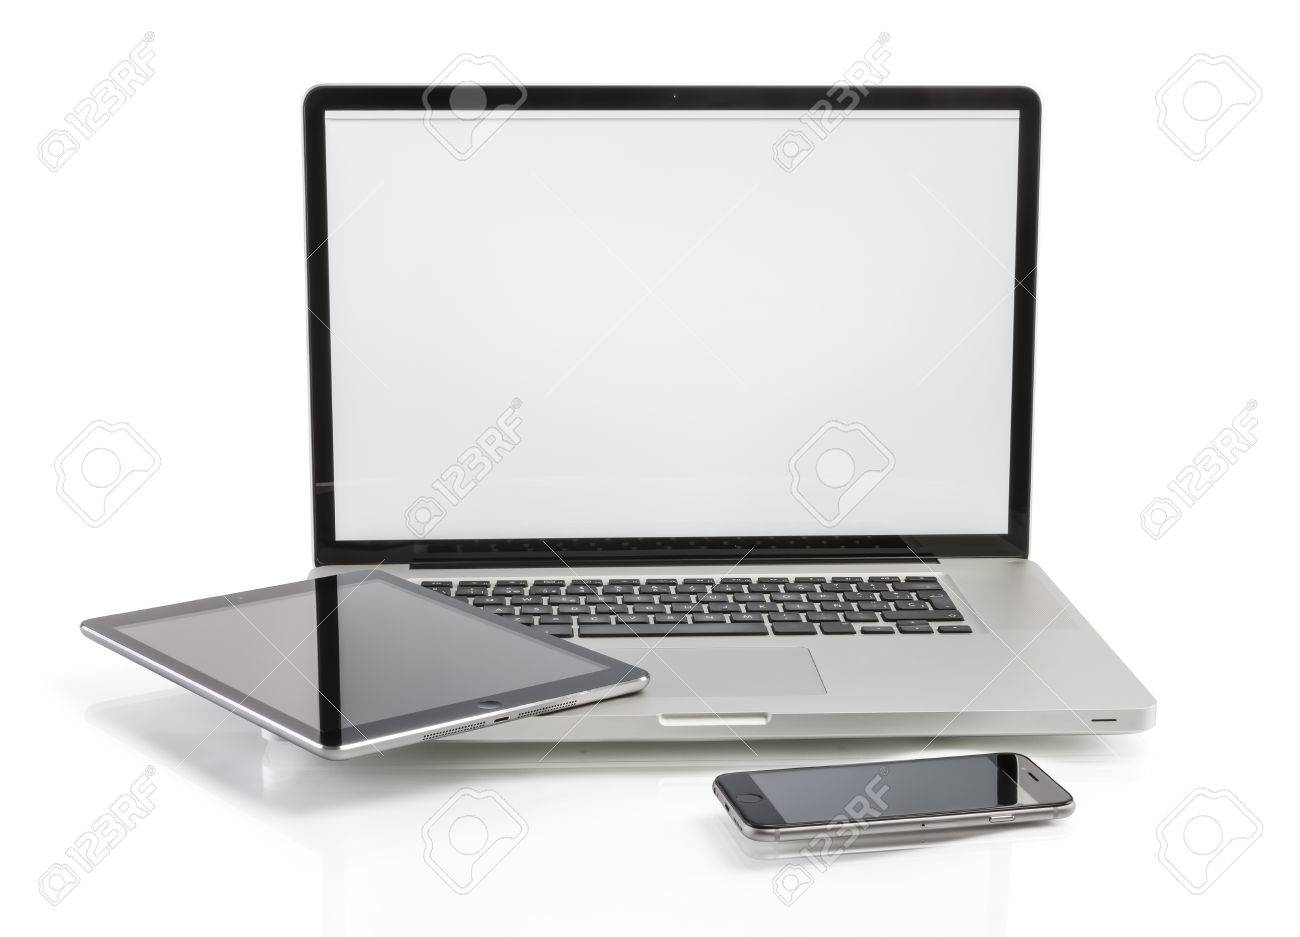 modern computer devices - laptop, tablet and phone with copy space on screen - 36293596